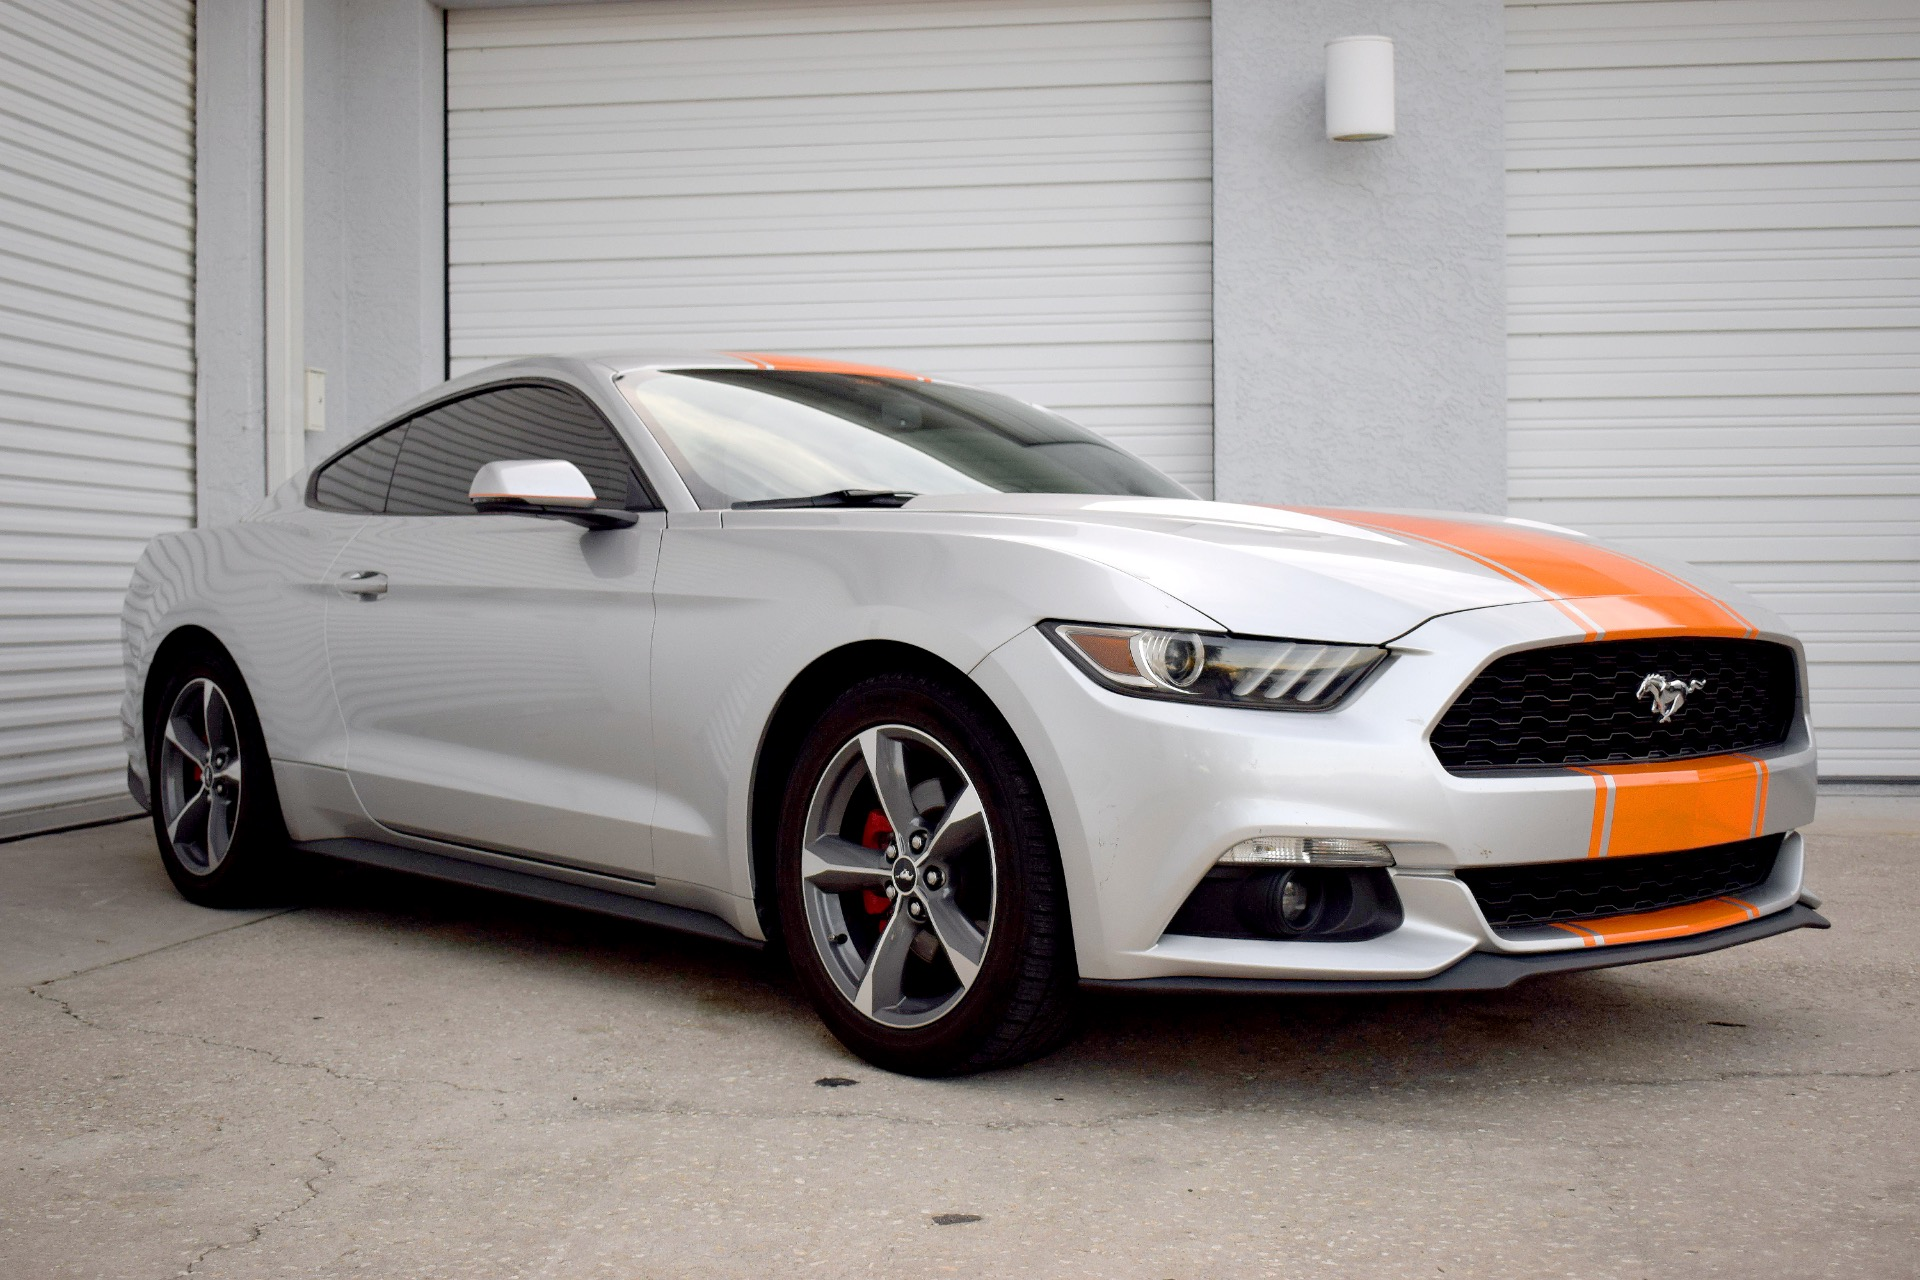 Used 2015 Ford Mustang EcoBoost Premium Coupe 2D for sale Sold at Track and Field Motors in Safety Harbor FL 34695 1